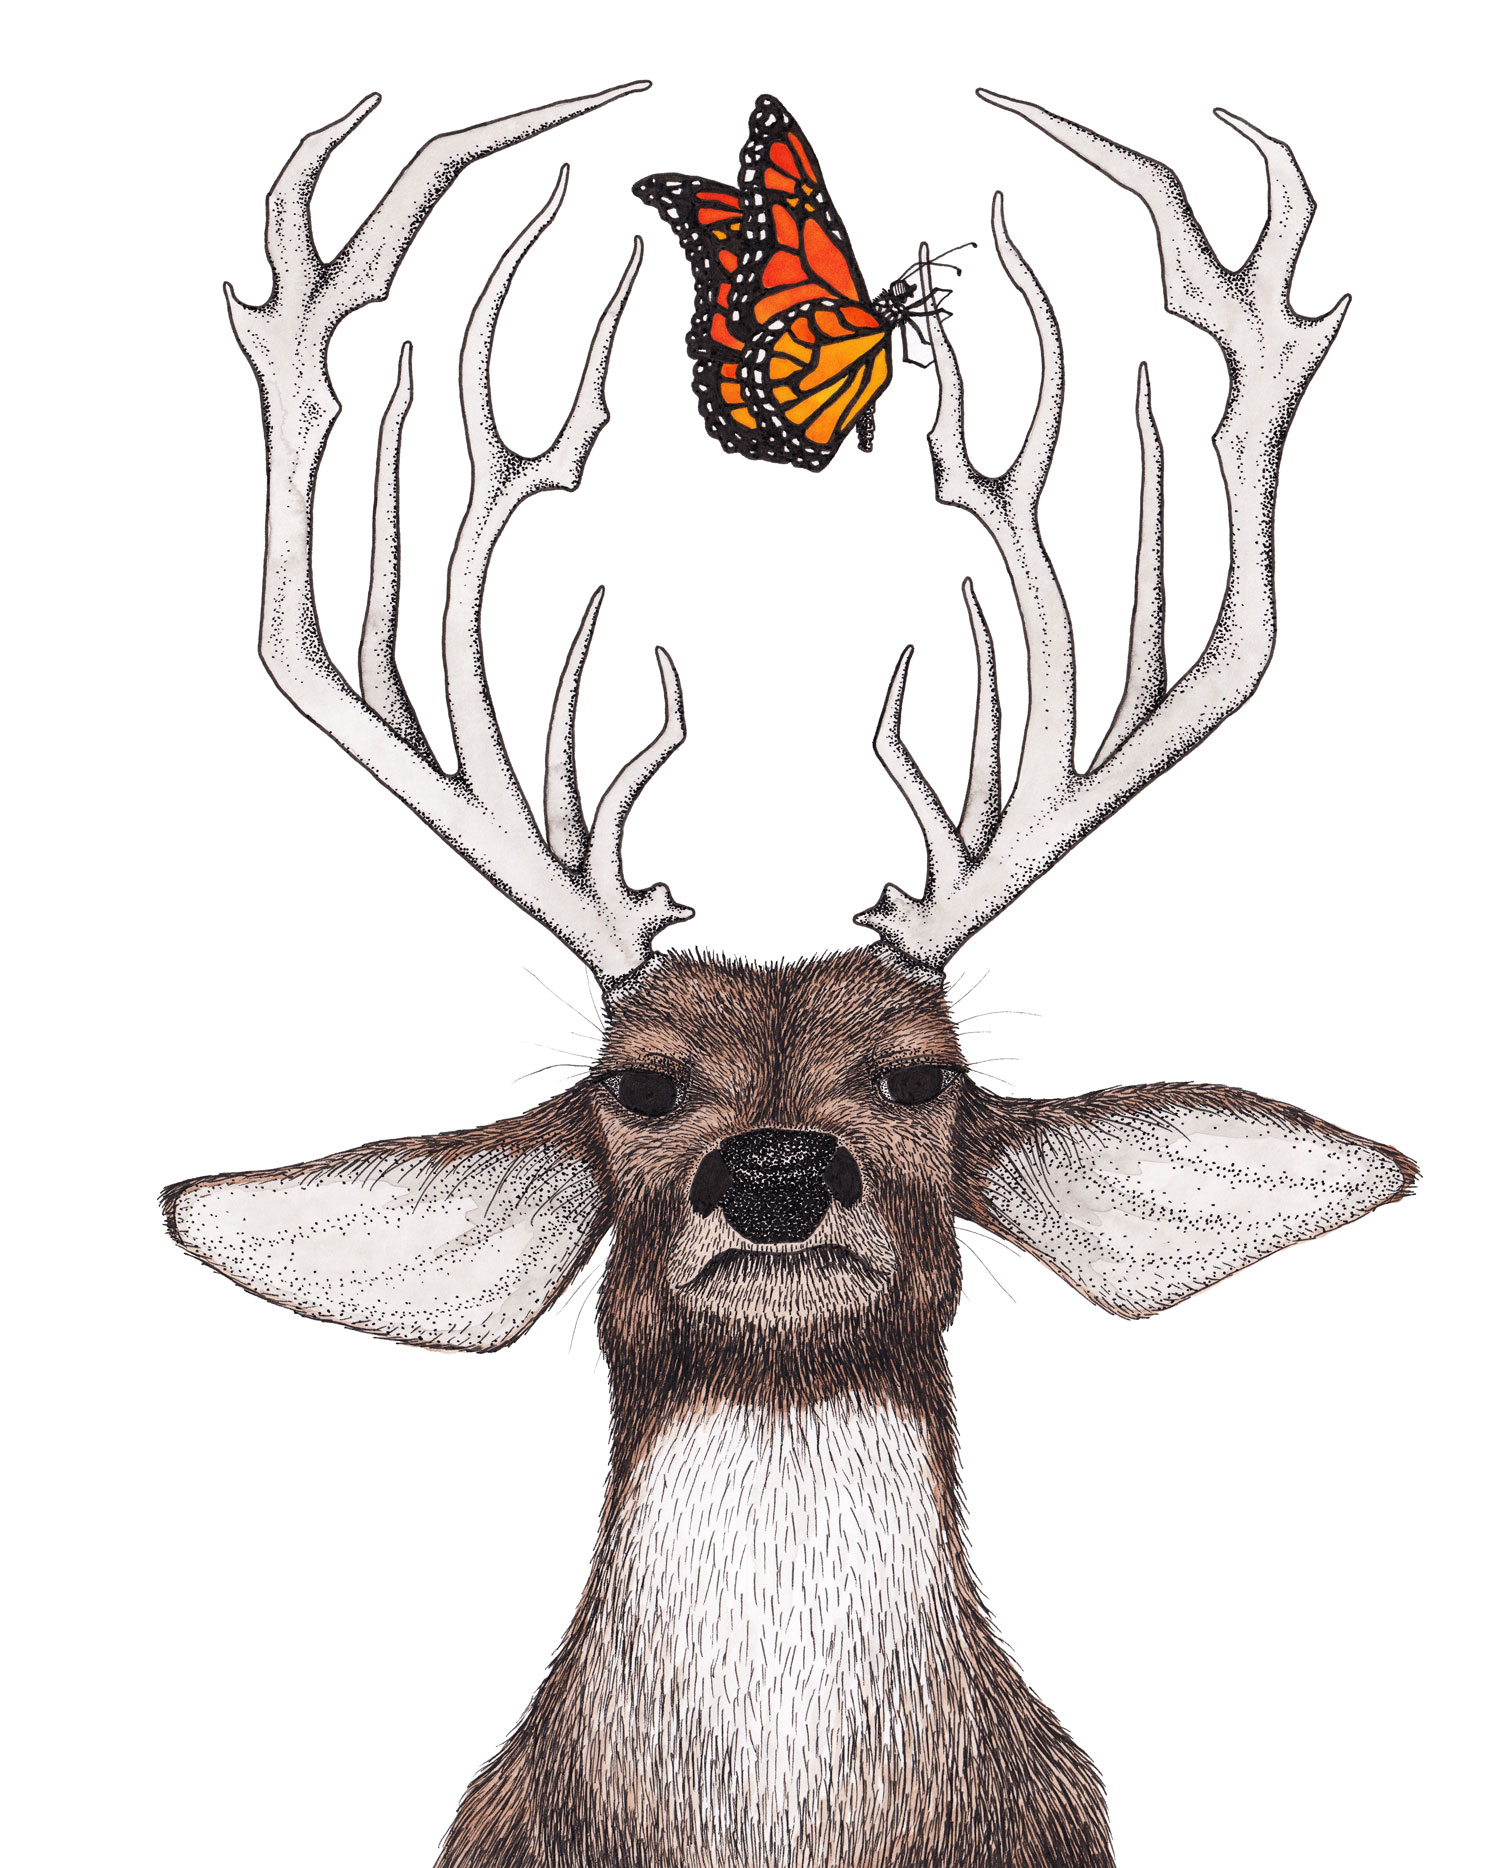 deer-stag-monarch-butterfly-antlers-illustration-matthew-woods.jpg